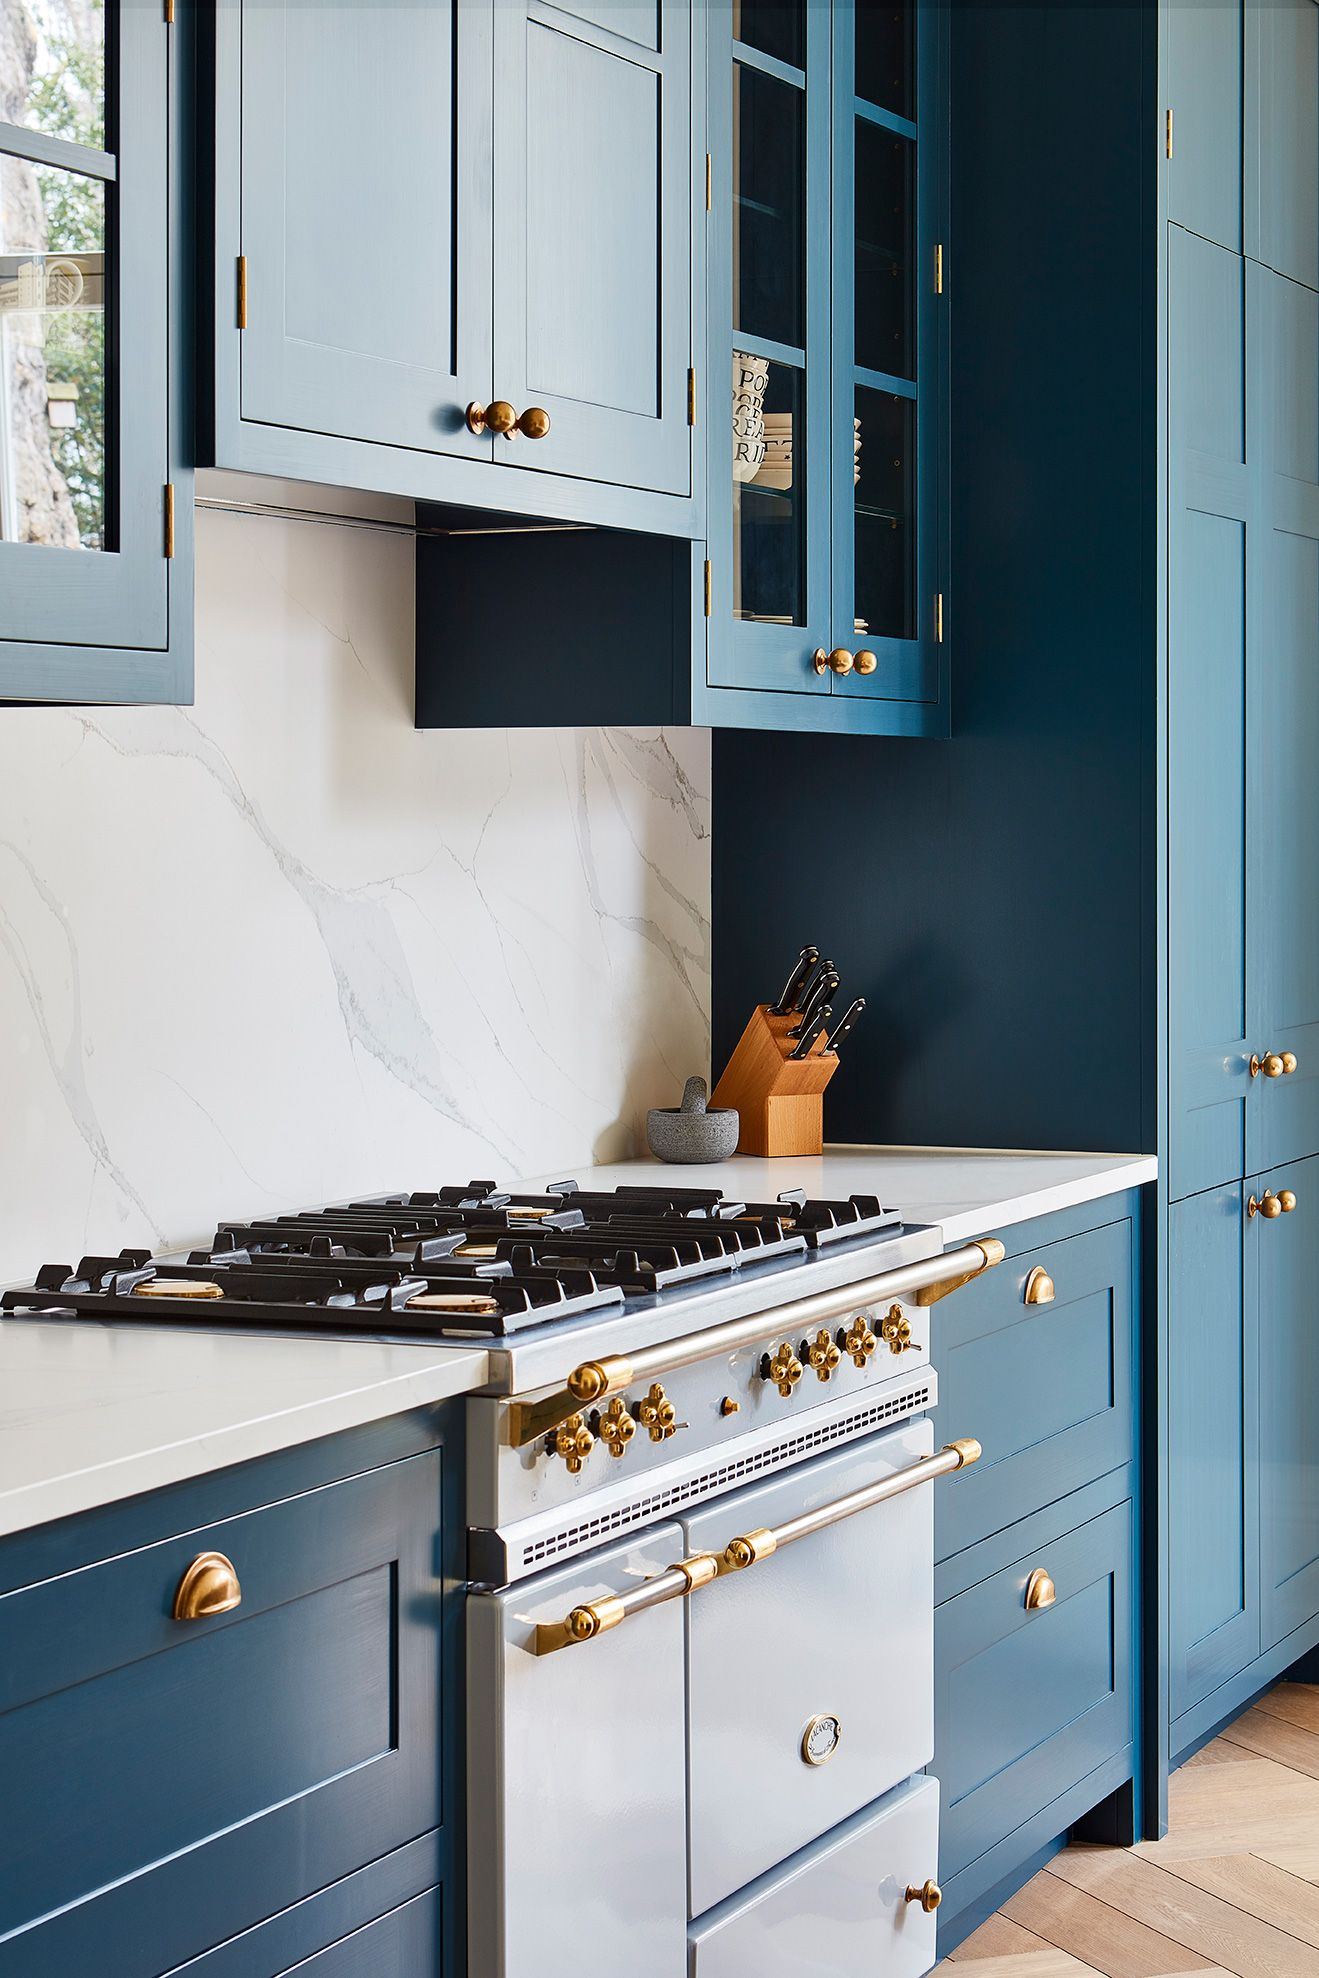 This Blakes London Contemporary Classic Shaker Kitchen Painted In Farrow A Blue Painted Kitchen Cabinets Modern Kitchen Renovation Kitchen Renovation